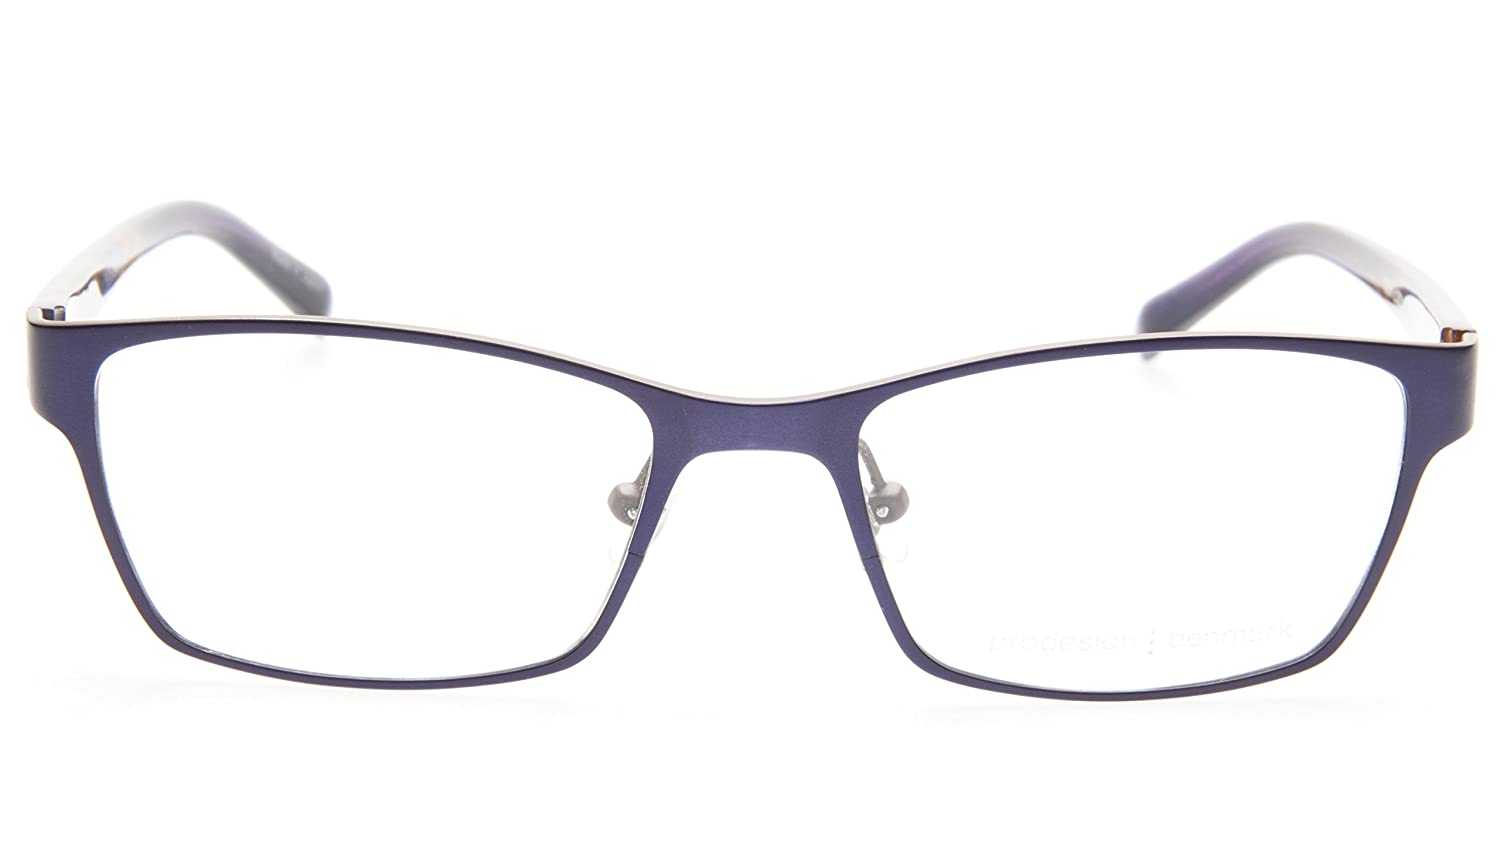 24f3bfc4b51c9 NEW PRODESIGN DENMARK 1296 c.3031 LILAC EYEGLASSES FRAME 51-17-130 B34mm  Japan at Amazon Women s Clothing store